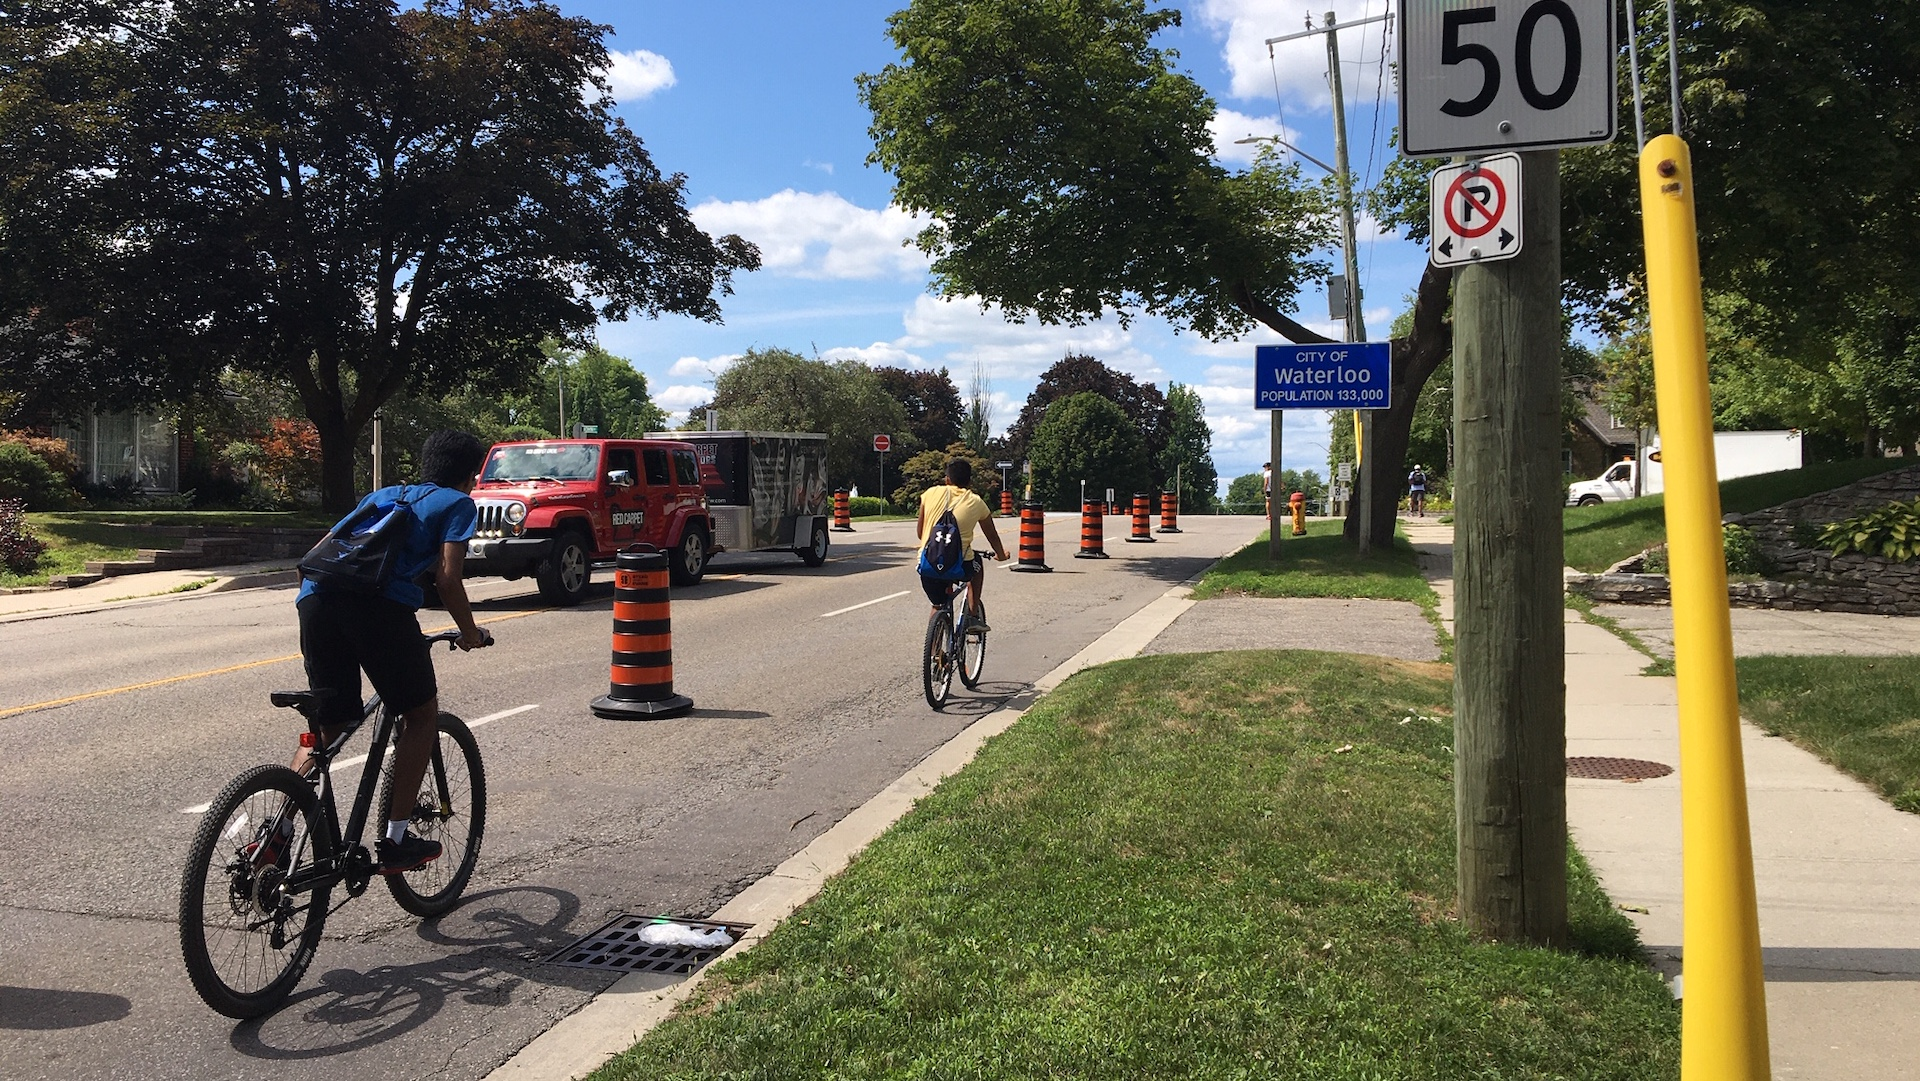 Two cyclists on a road, separated by construction barrels to protect them from traffic in Waterloo, Ontario.